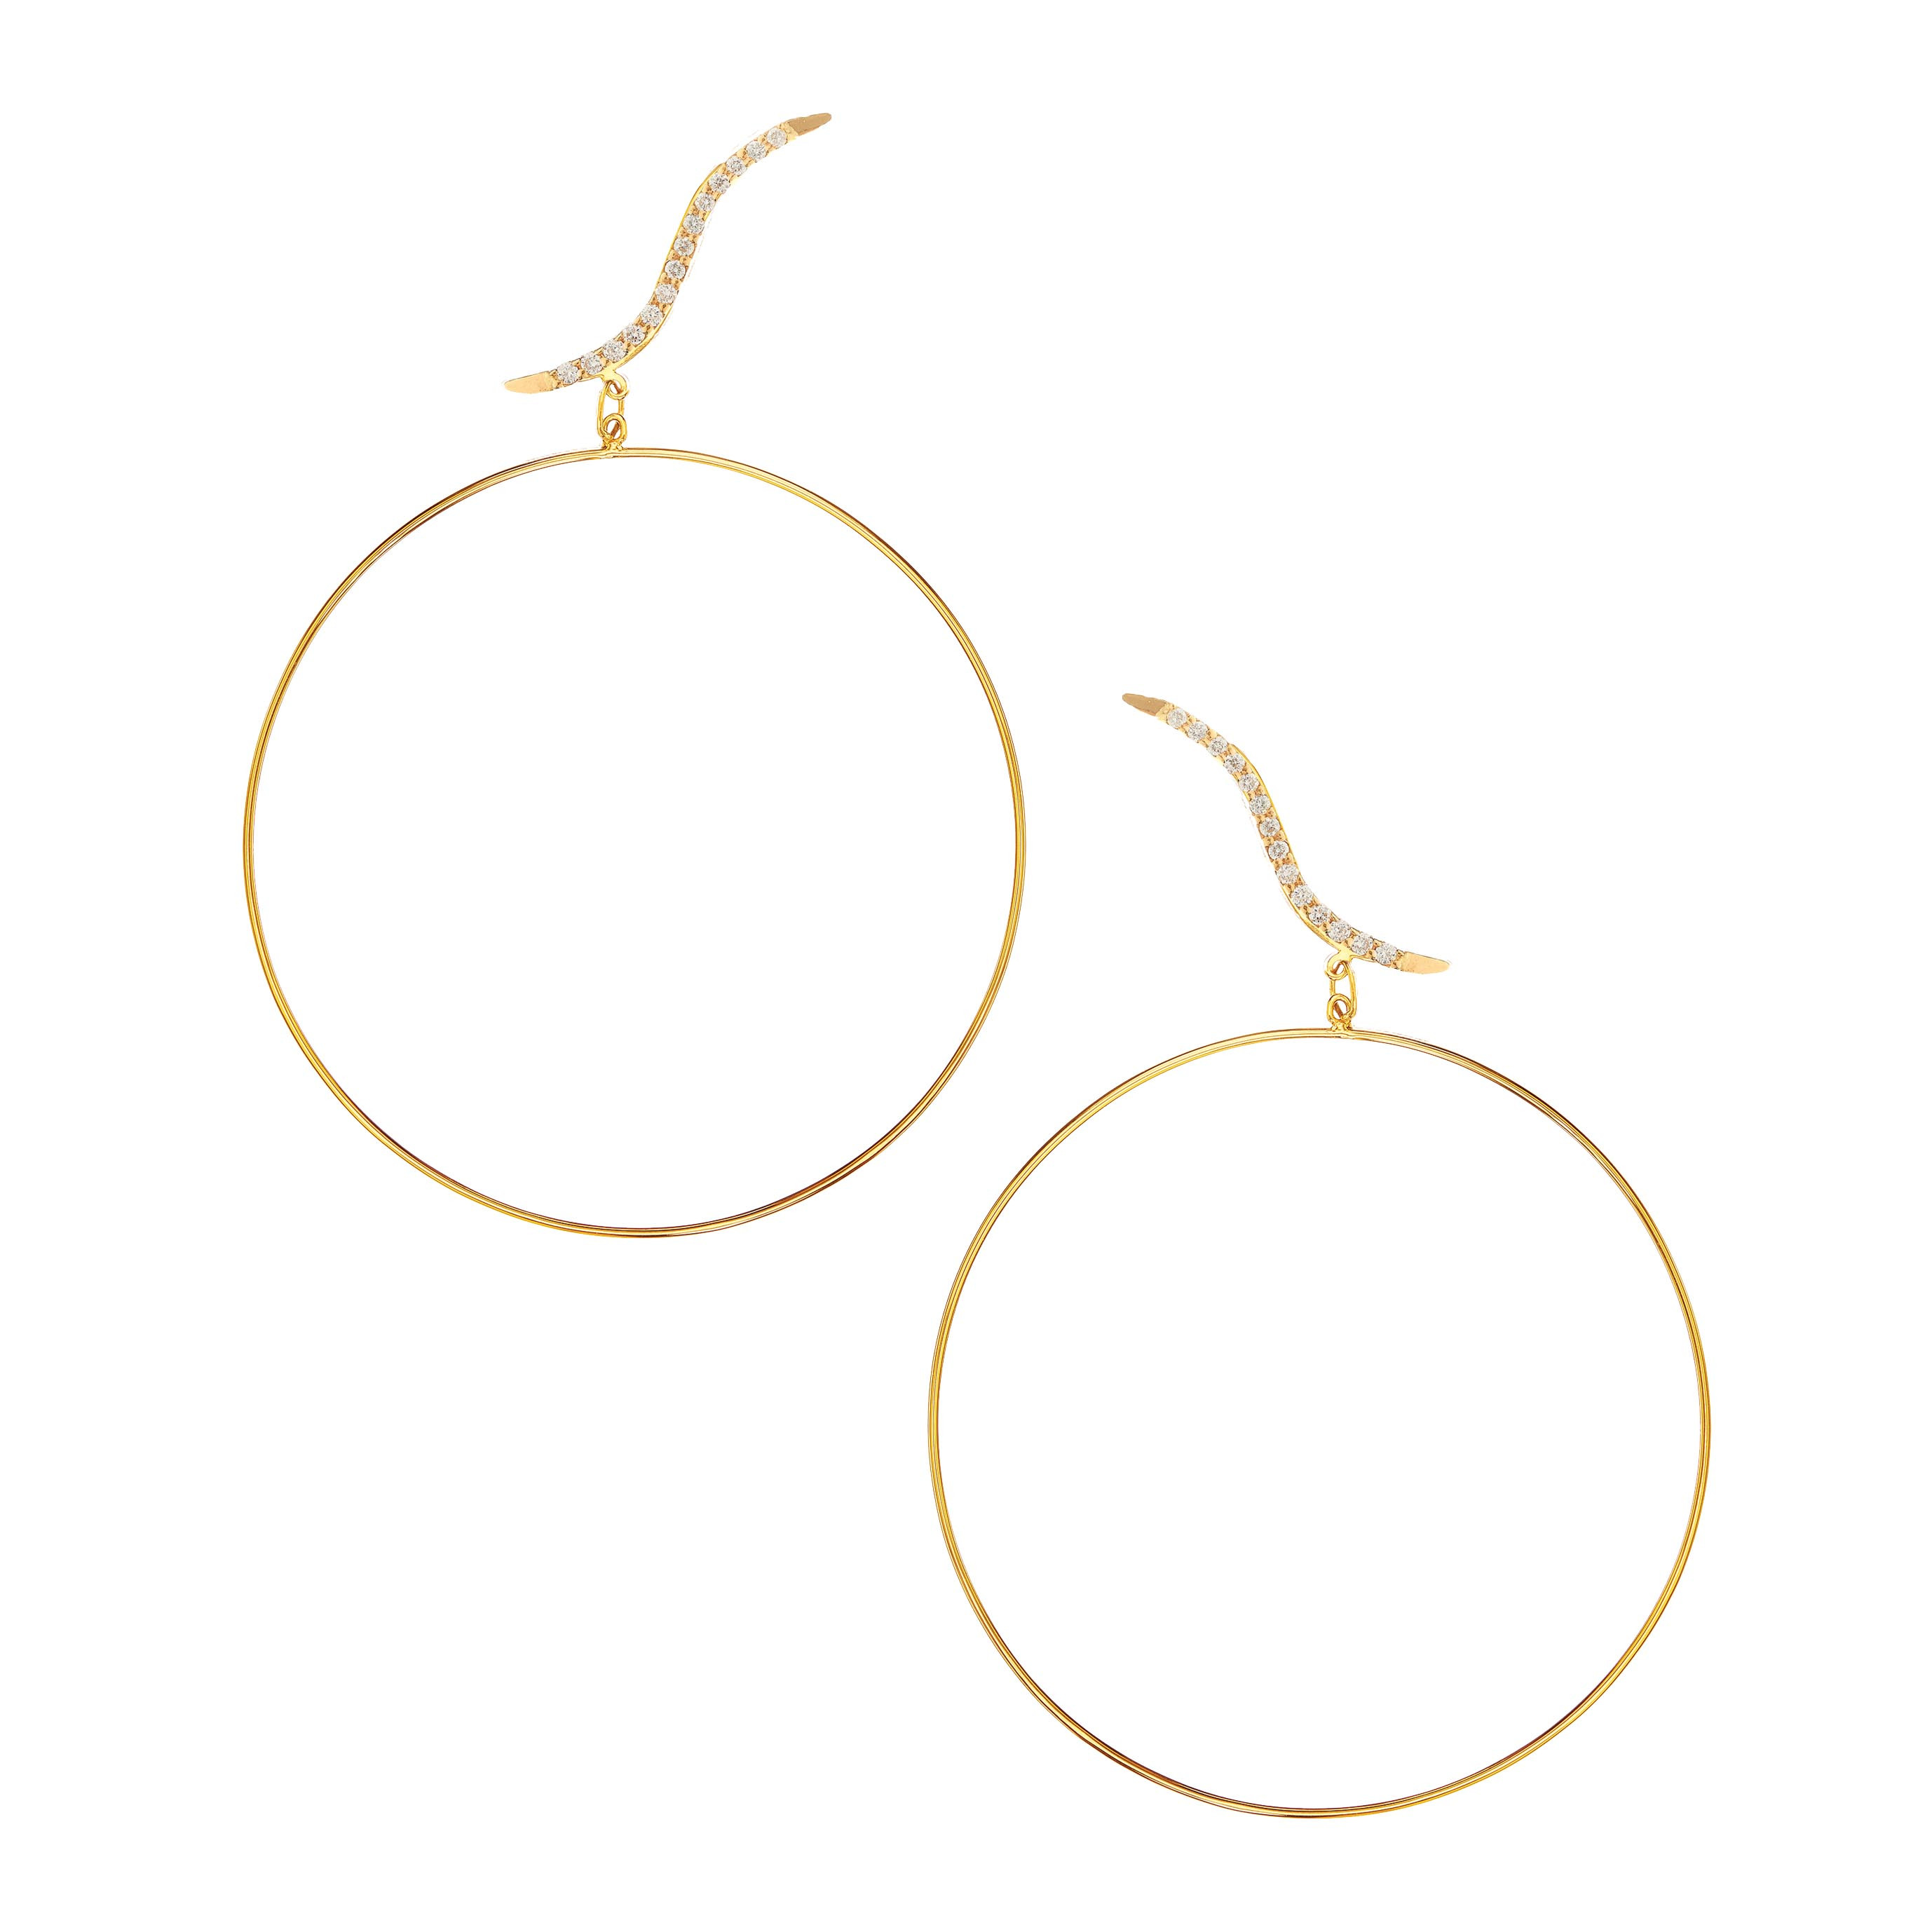 New Lana Jewelry 0.21 CTW Electric Hoop Stud Duo Earrings